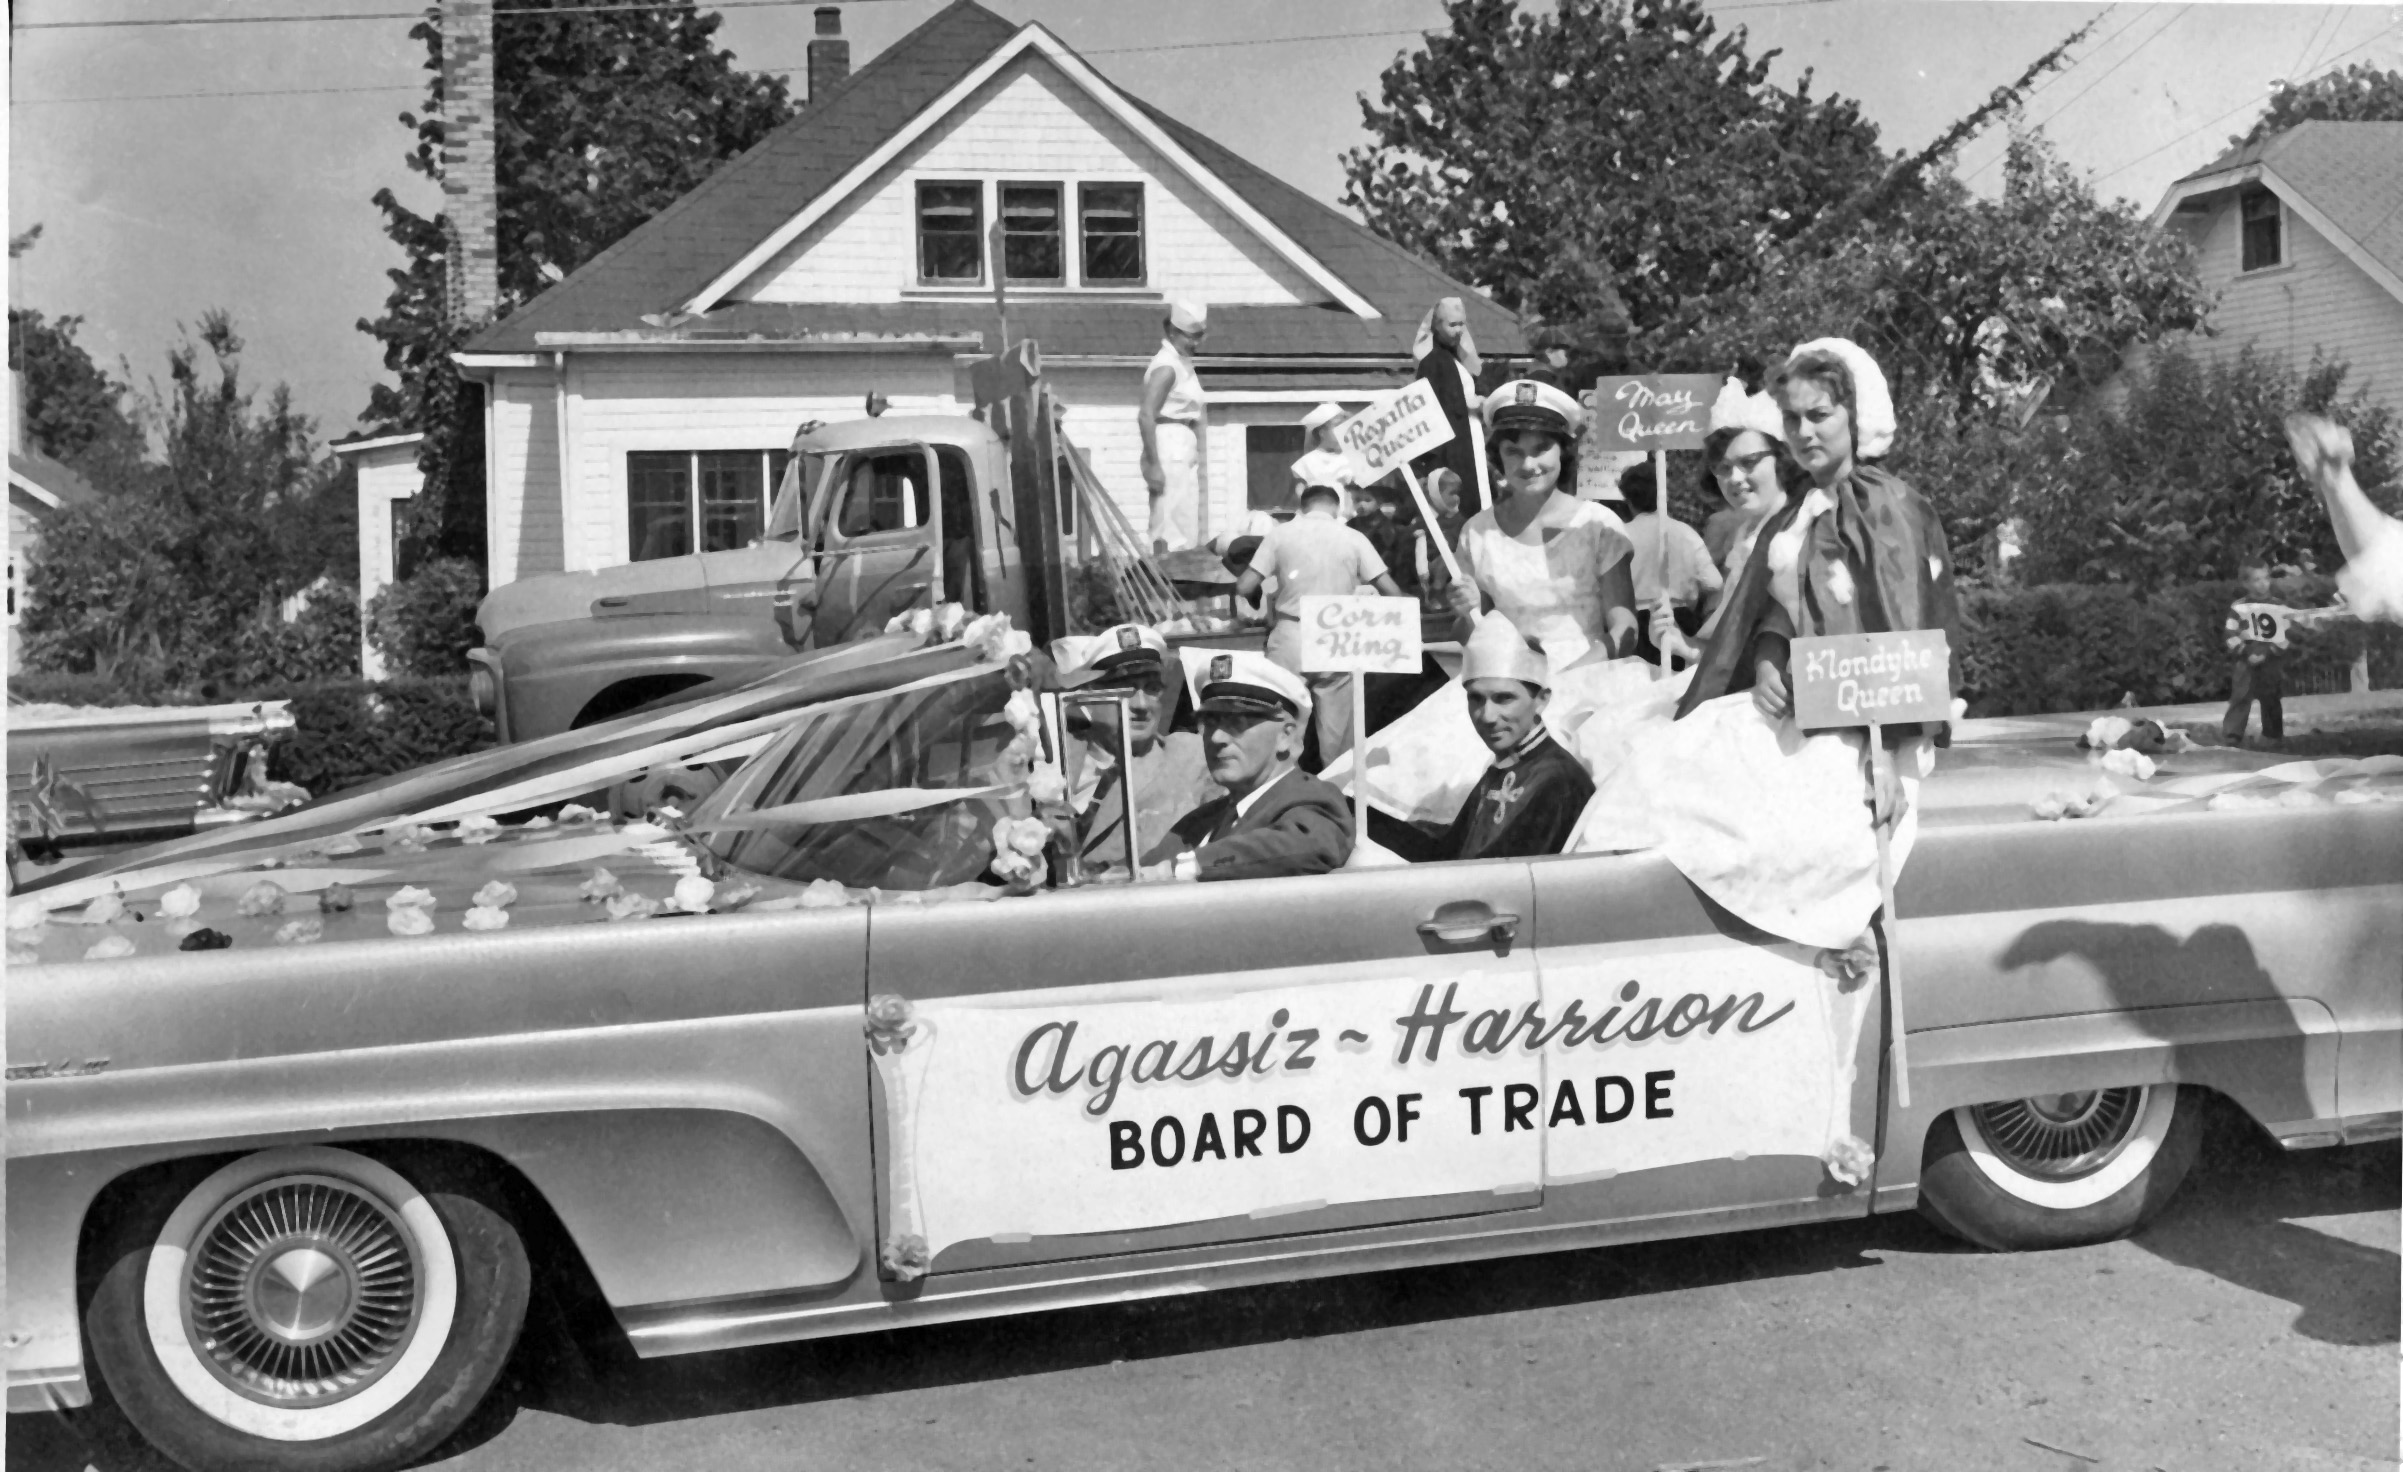 Black and white photograph of the Agassiz-Harrison Board of Trade car full of costumed adults in a parade, 1958.